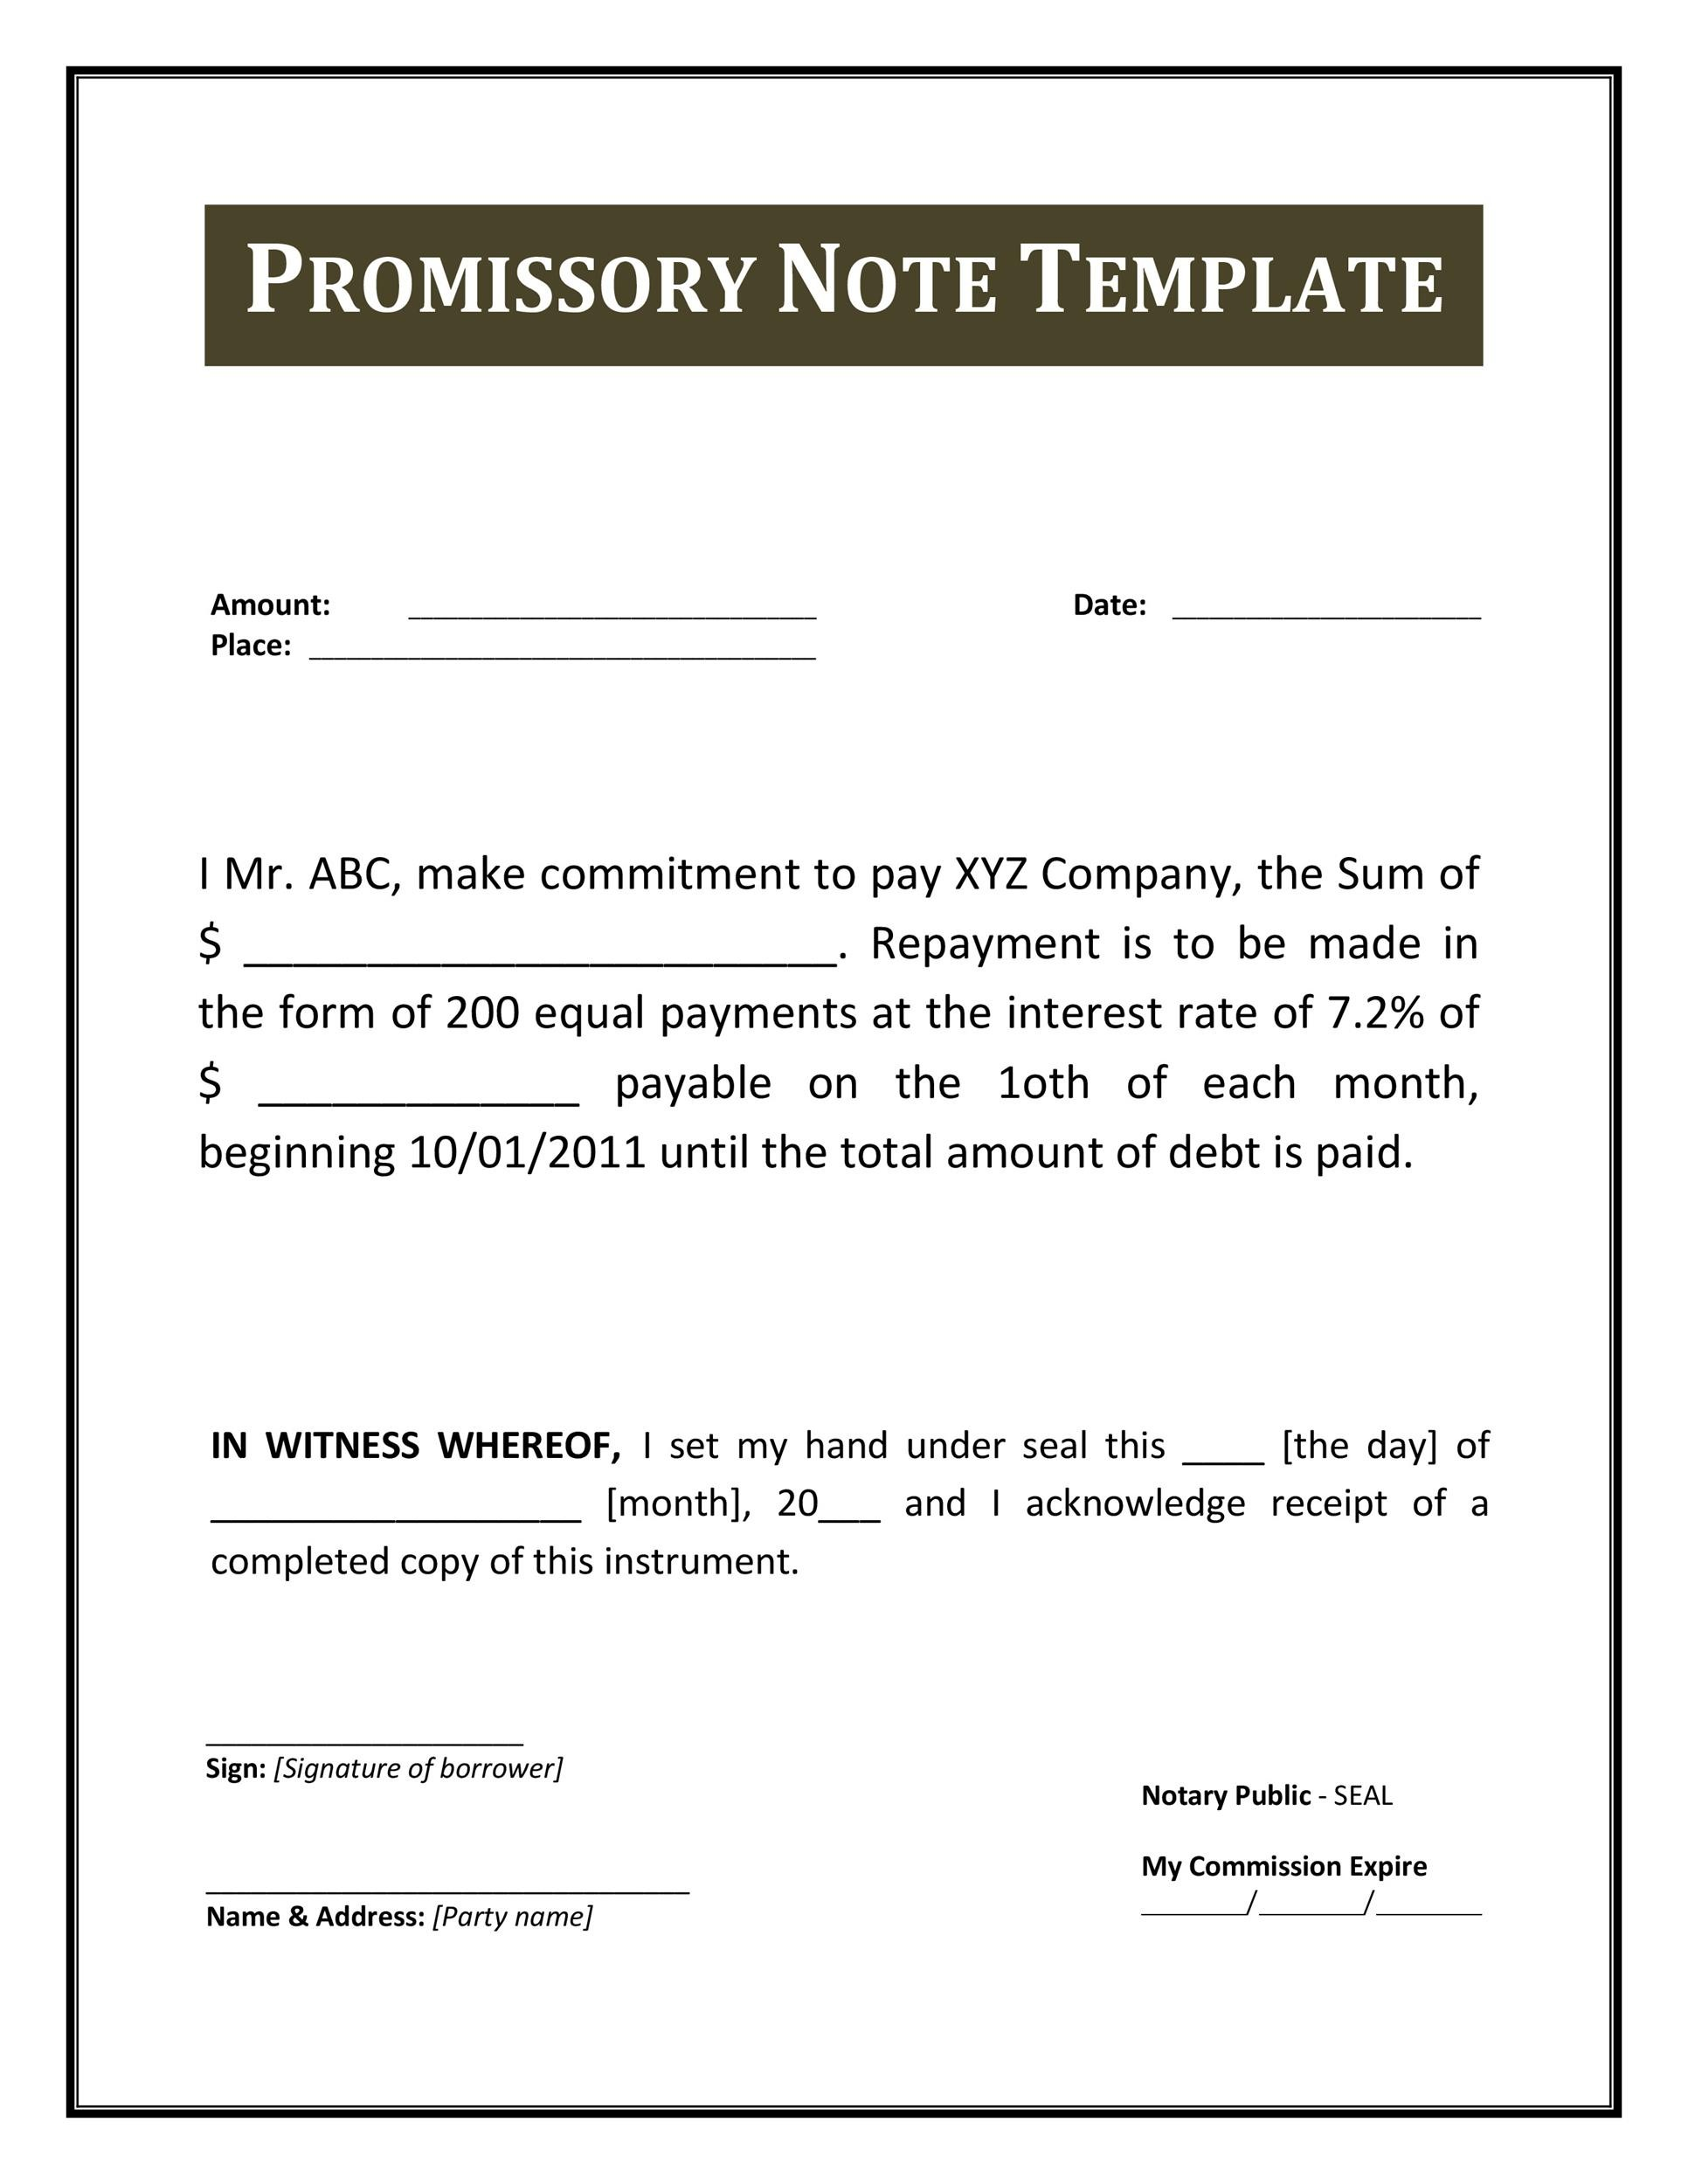 High Quality Printable Promissory Note Template 33  Legal Promise To Pay Document